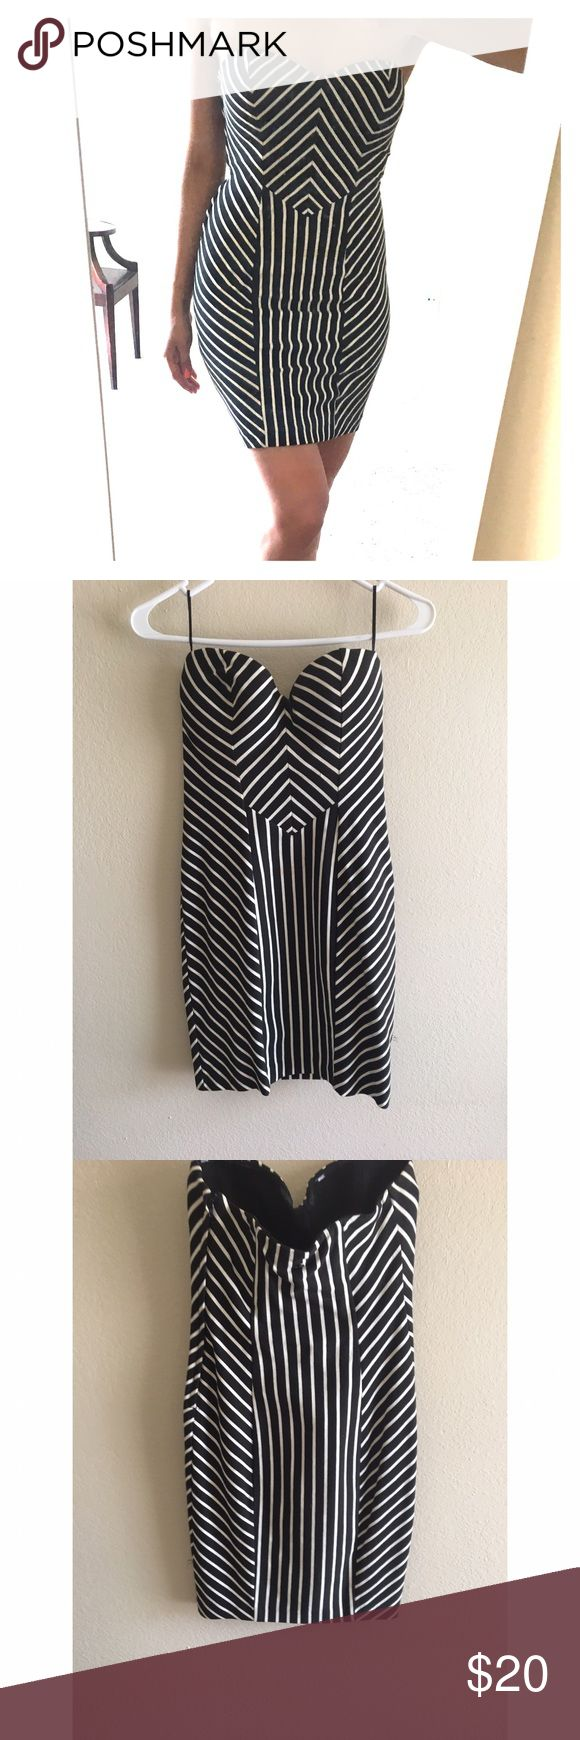 Guess dress Black and white striped cocktail dress Guess Dresses Mini